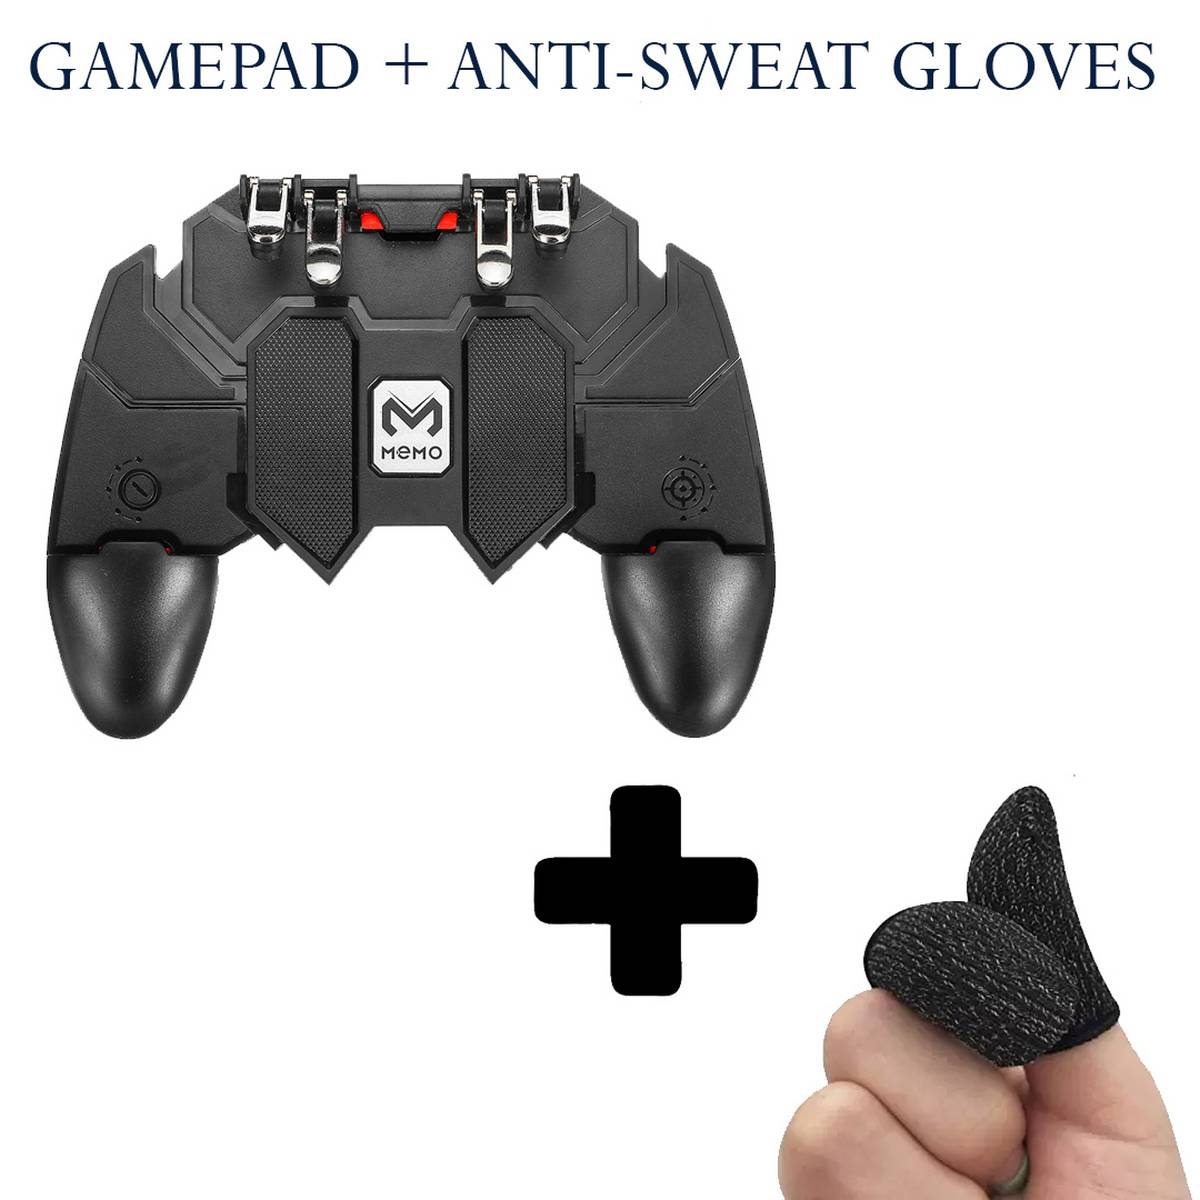 AK66 Pubg Gamepad / Pubg / Gamepad For Pubg / Gamepad For Pc / Pc Gamepad / Pubg Controller / Pubg Trigger / Pubg Controller For Mobile with thumb gloves / sleeves